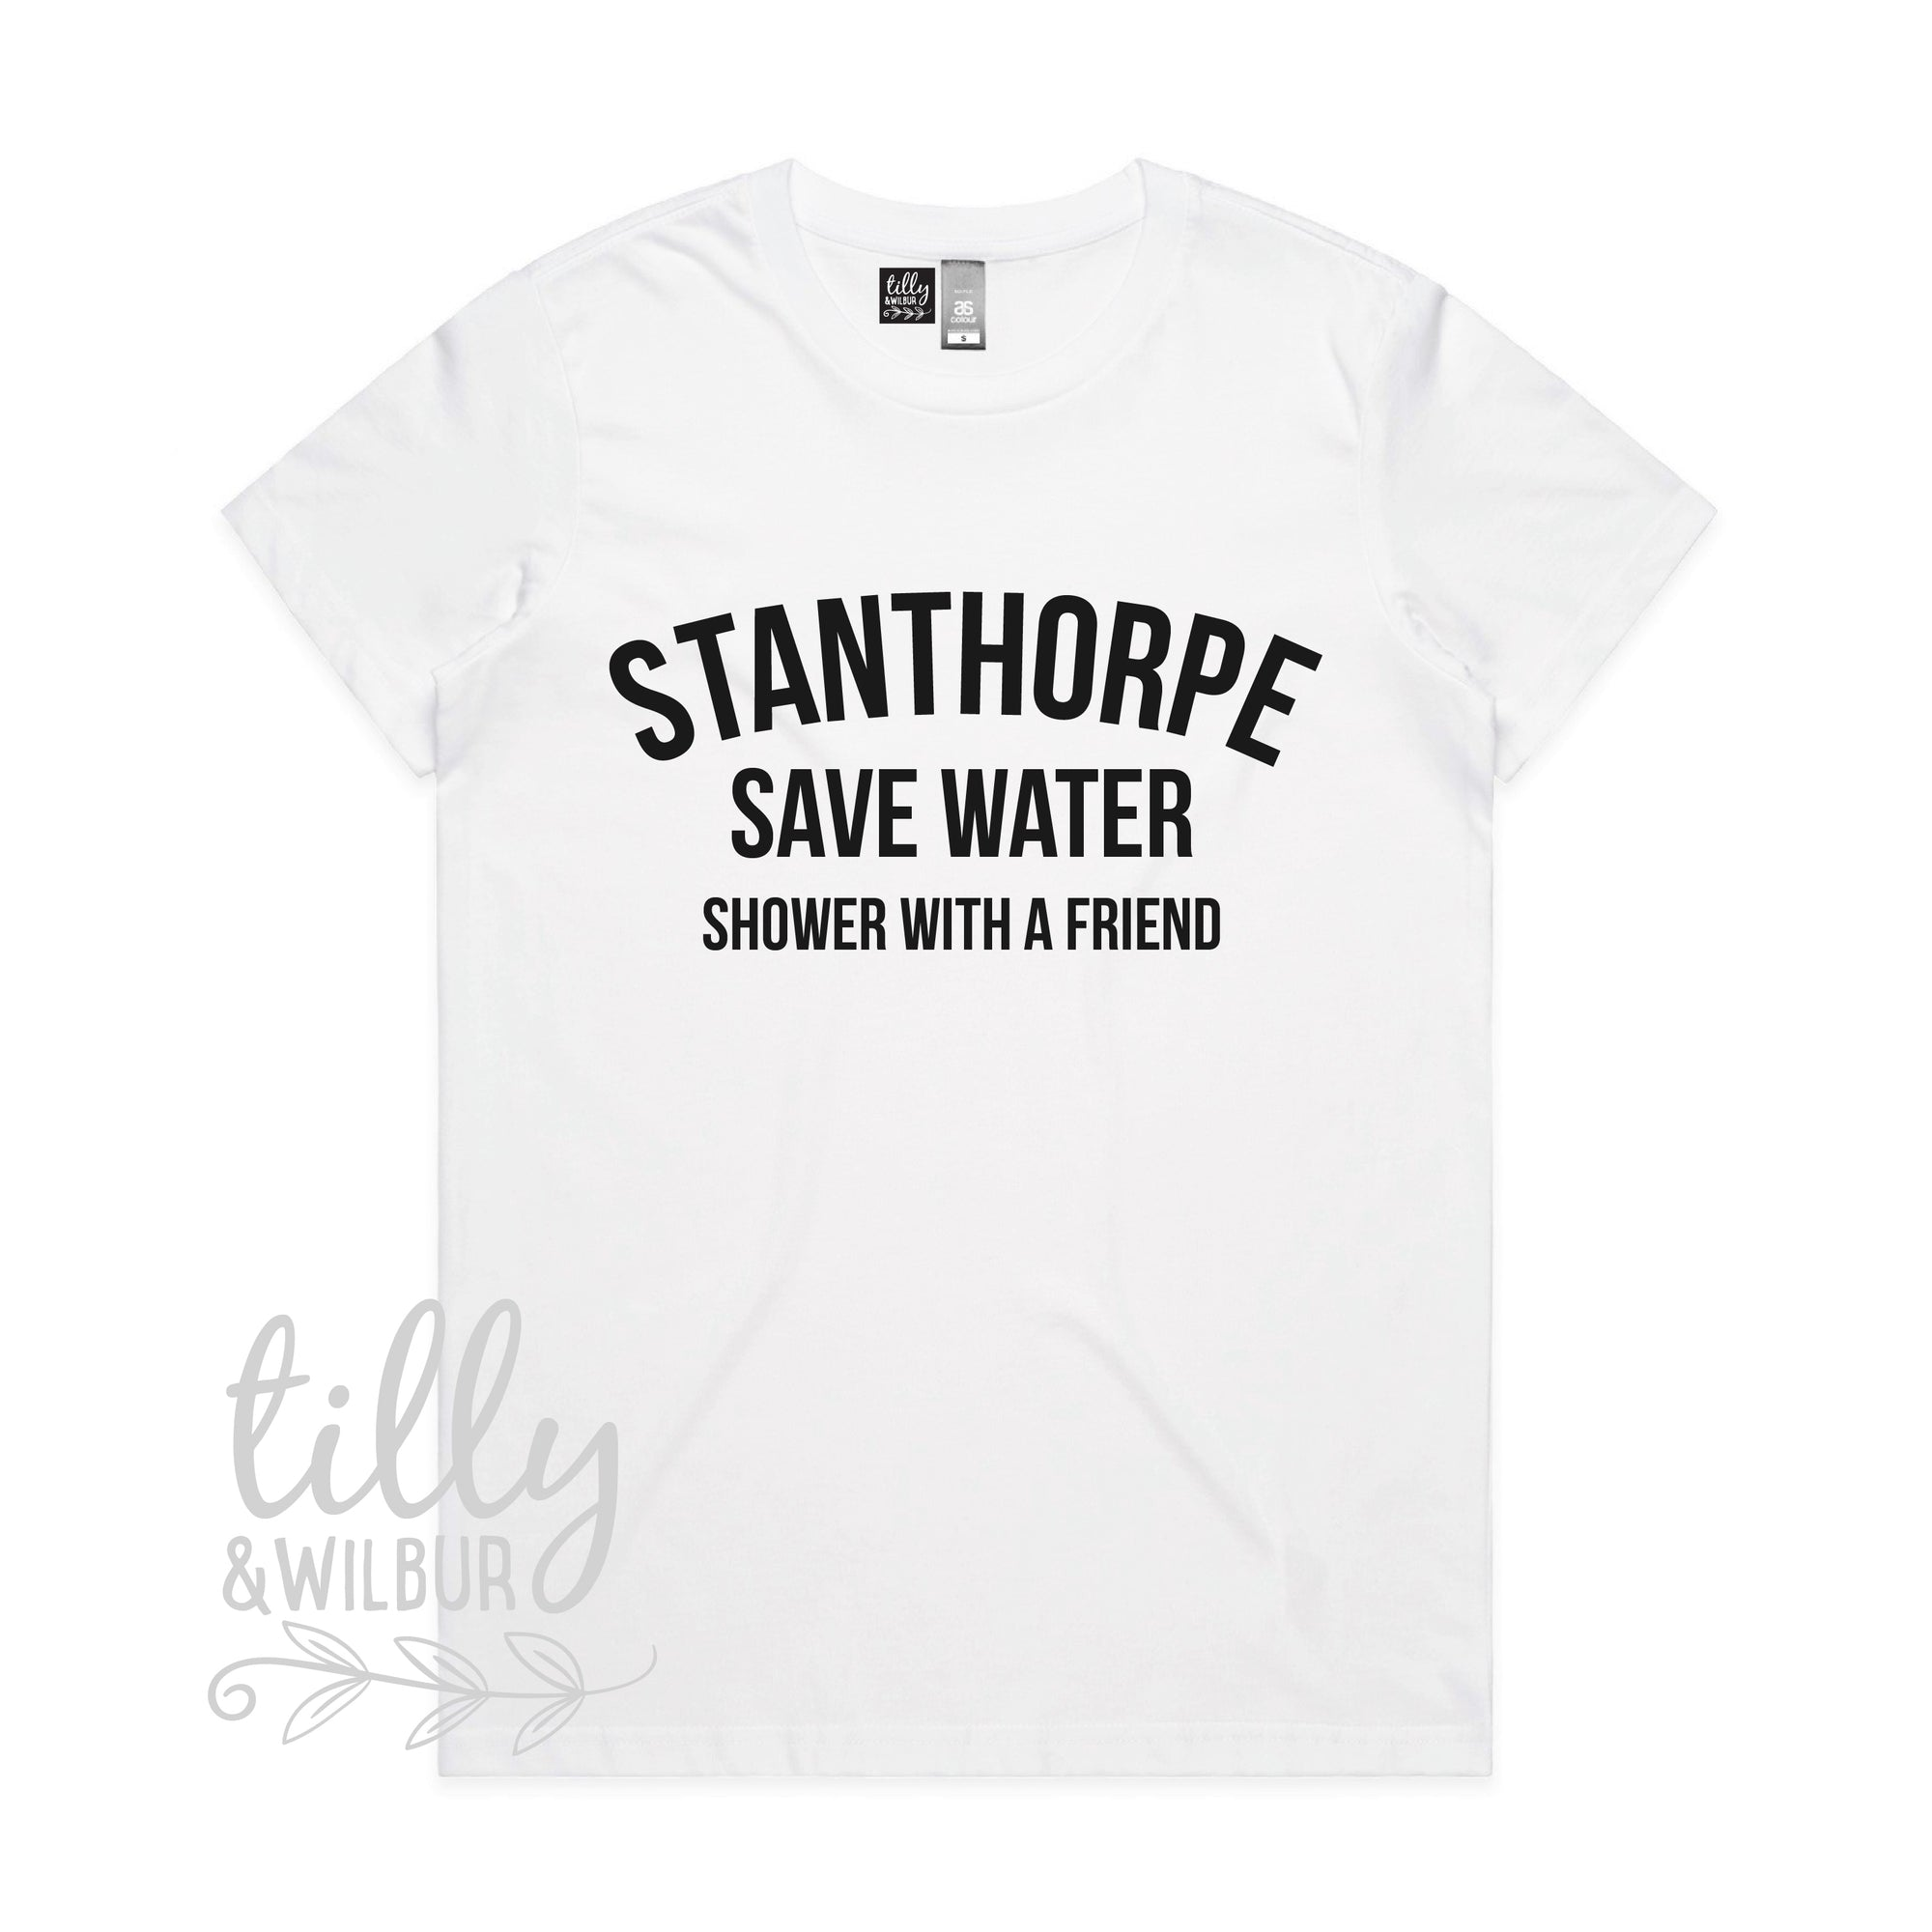 Stanthorpe Save Water Shower With A Friend Women's Tee